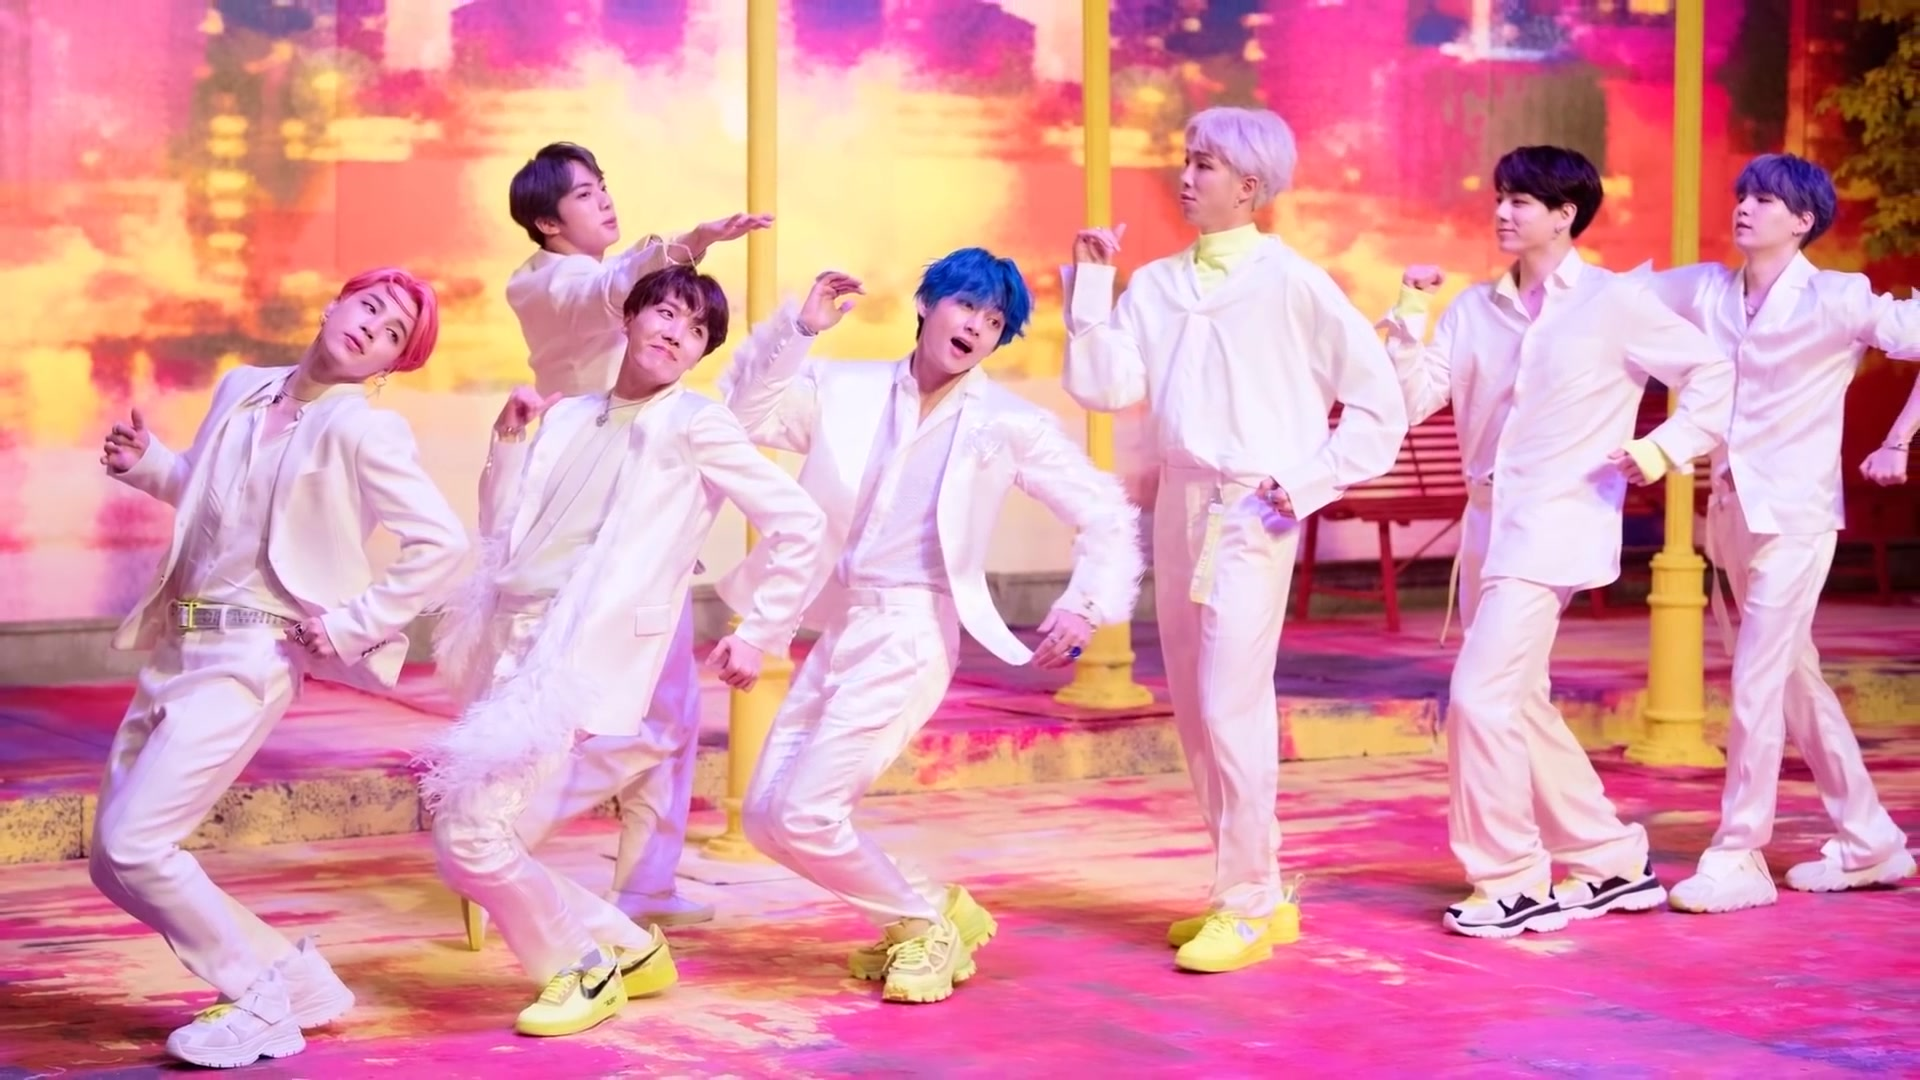 BTS for Dispatch %22Boy With Luv%22 MV behind the scene shooting%2C 15 March 2019